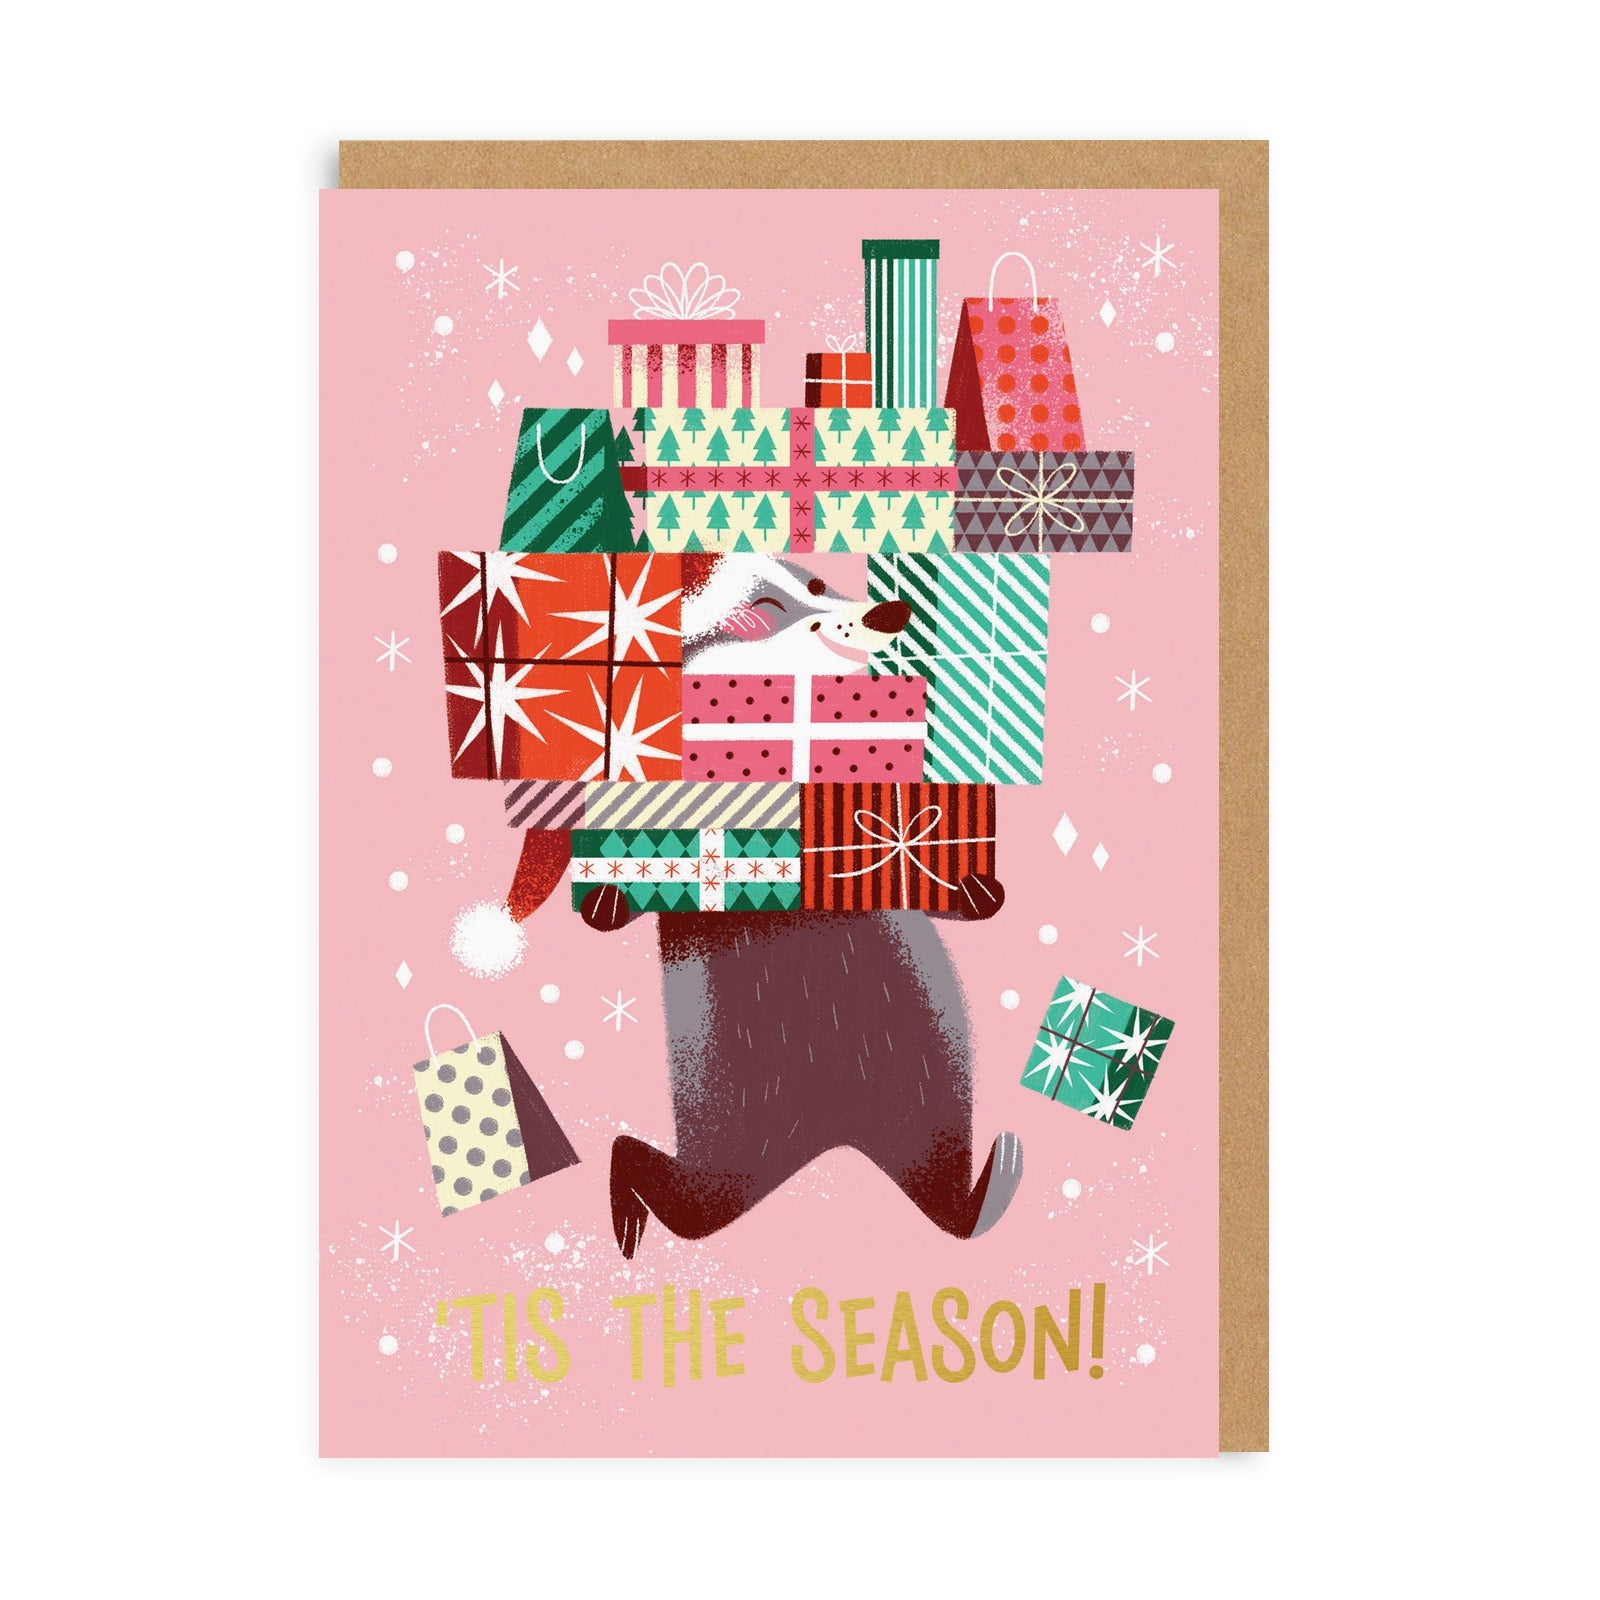 Tis The Season Badger Greeting Card